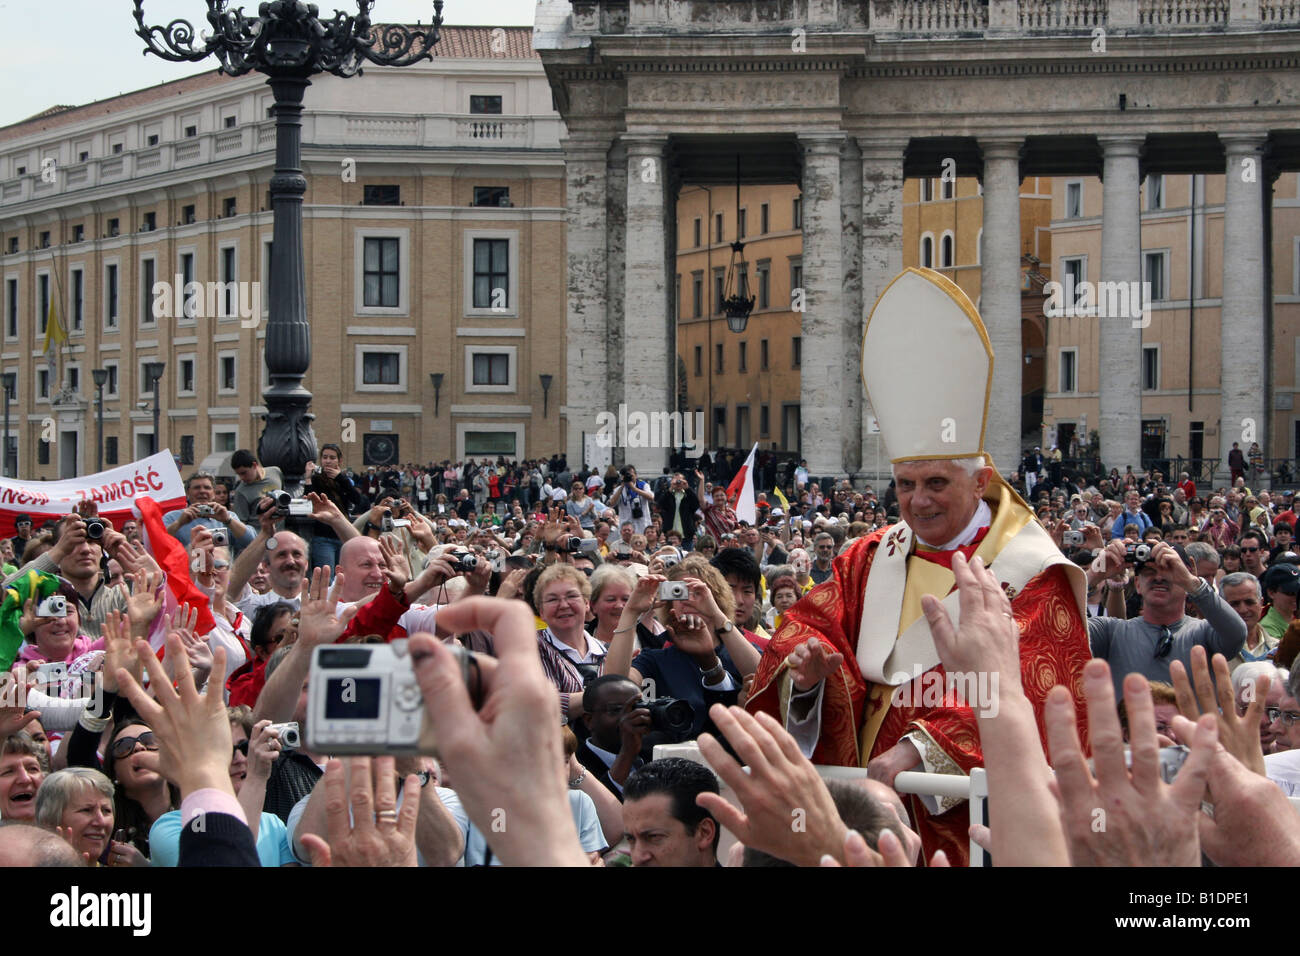 ITALY, ROME, VATICAN. Pope Benedict XVI Leads Special Mass on Anniversary of John Paul II s Death - Stock Image